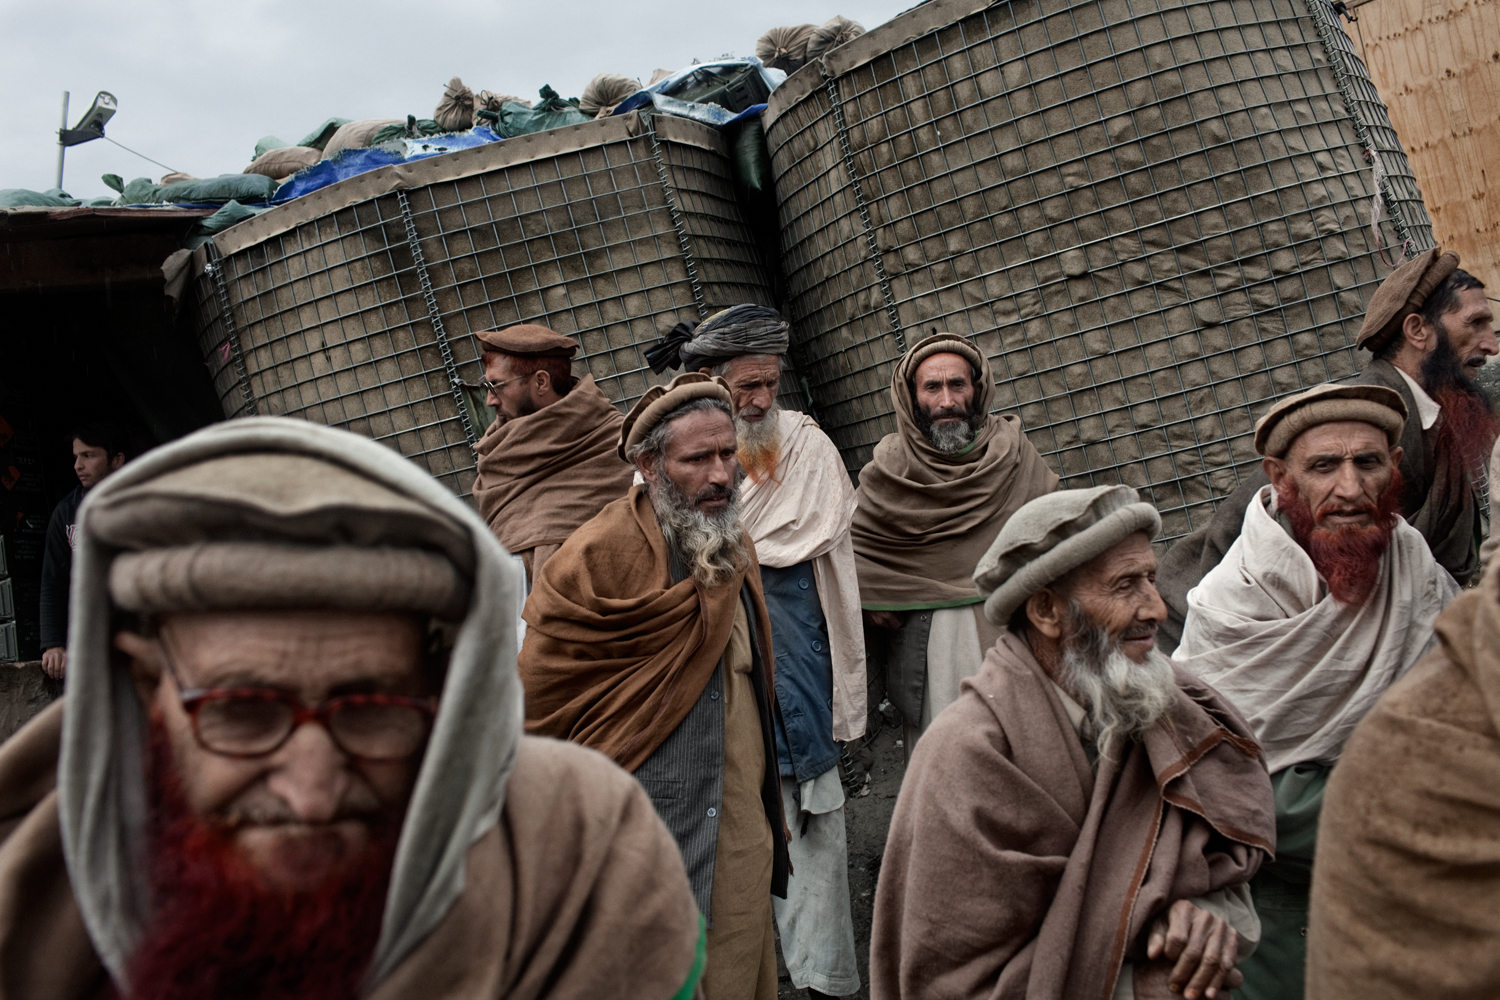 Village elders attend a meeting with U.S. Army at the Korengal Outpost, Kunar Province, Afghanistan.